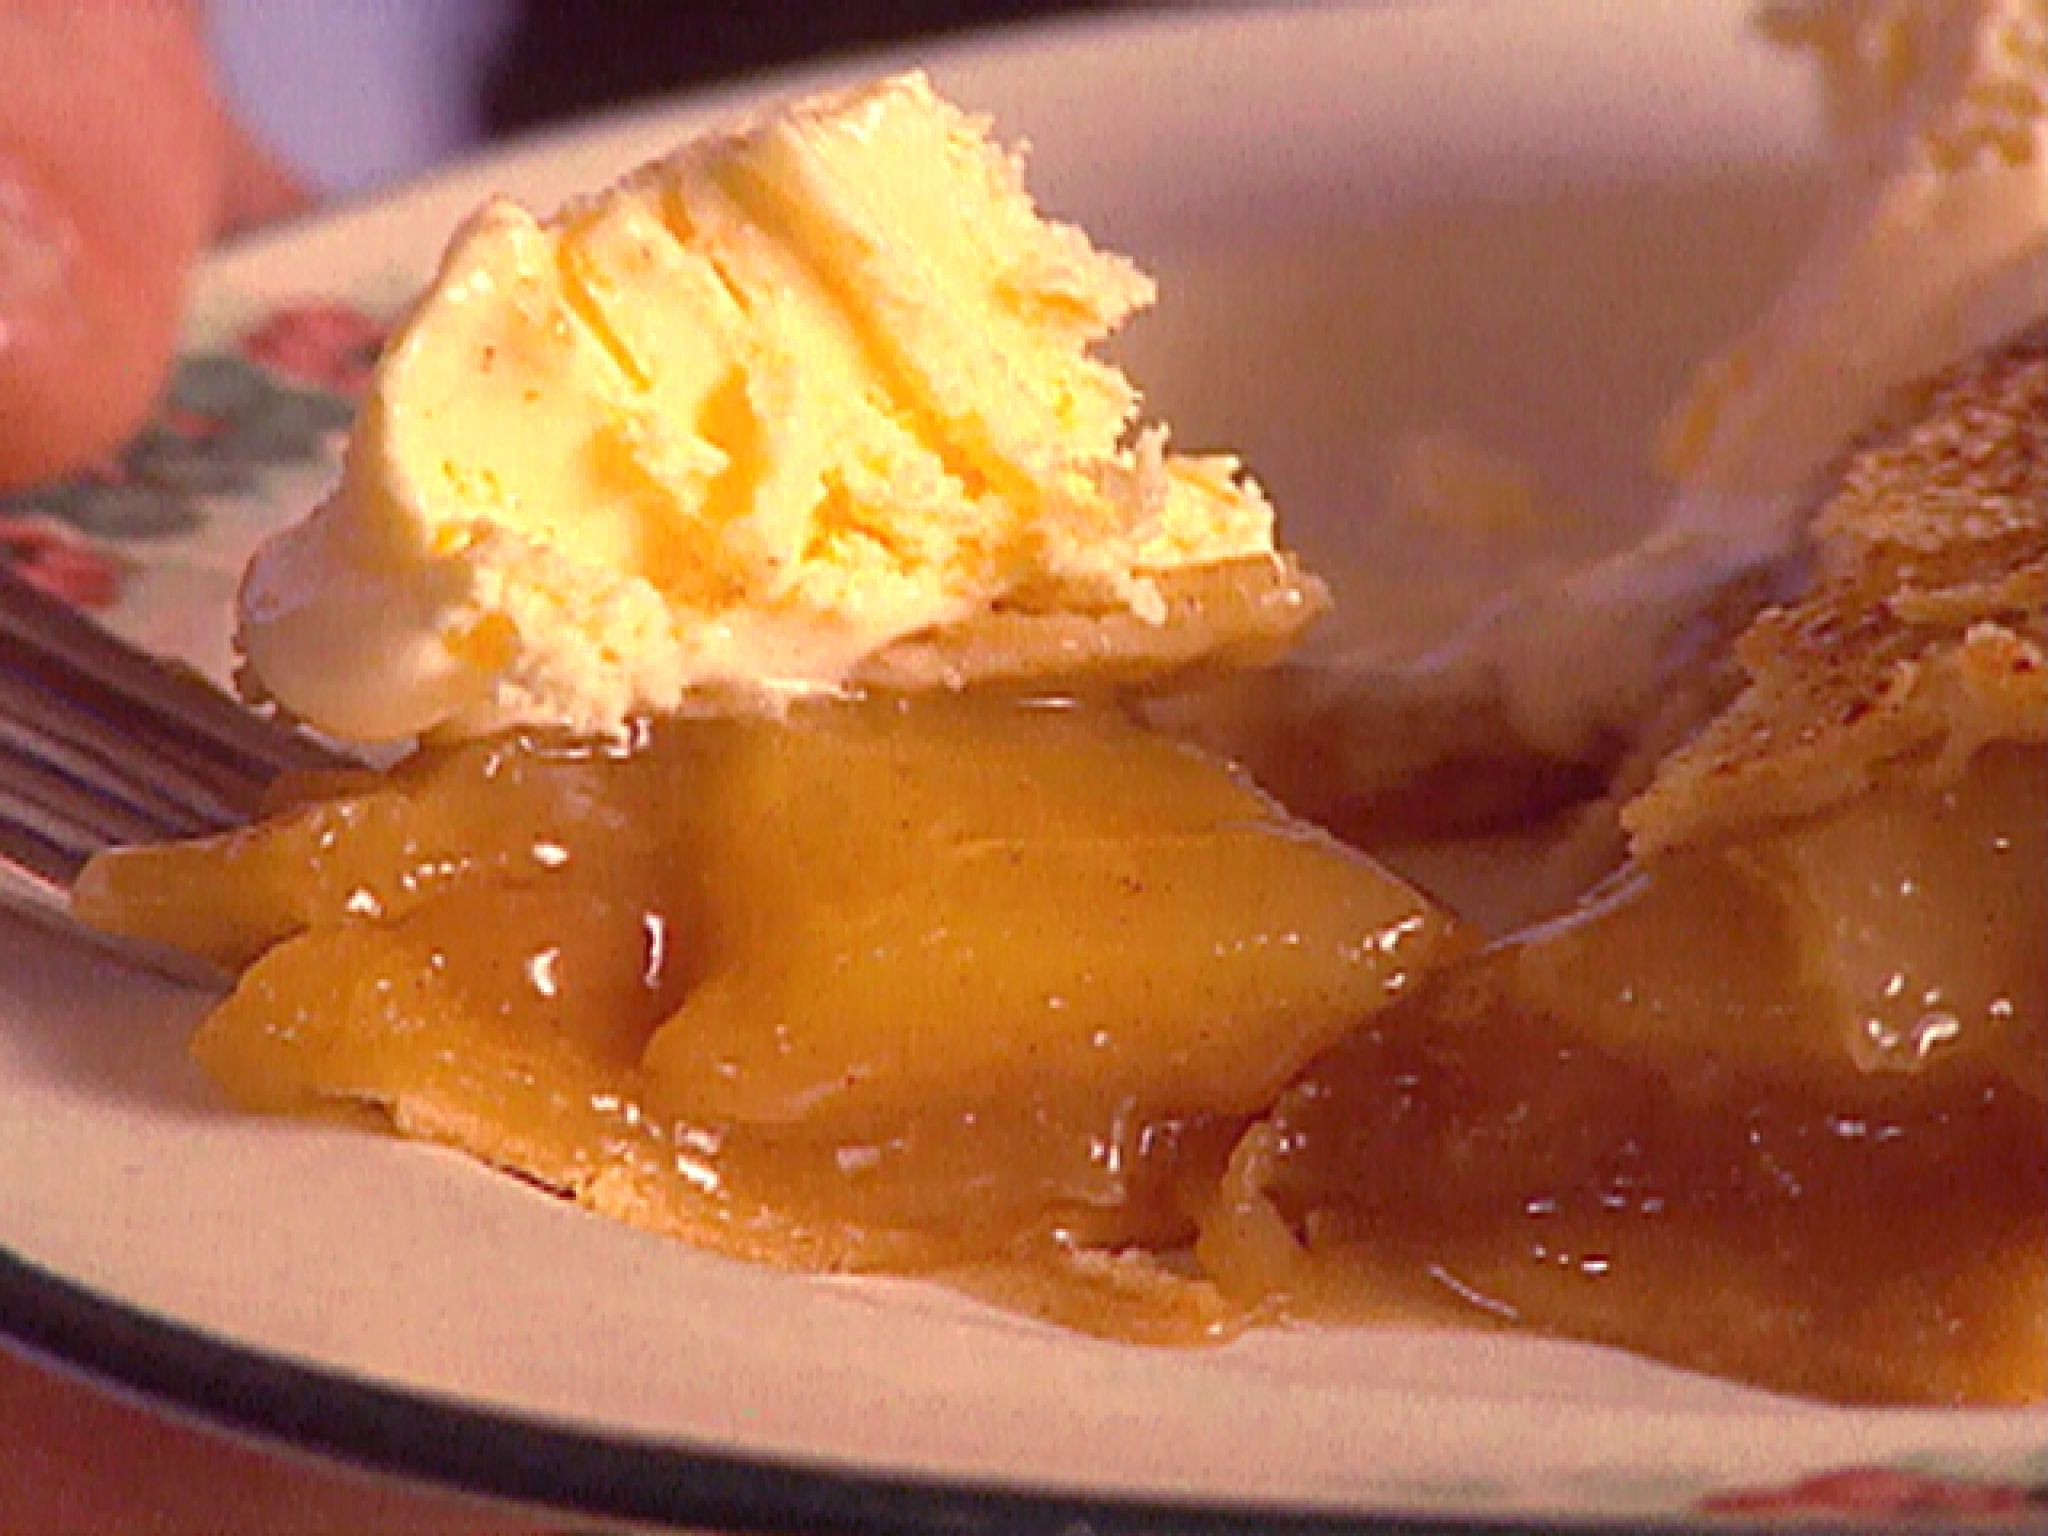 Traditional Apple Pie recipe from Tyler's Ultimate via Food Network